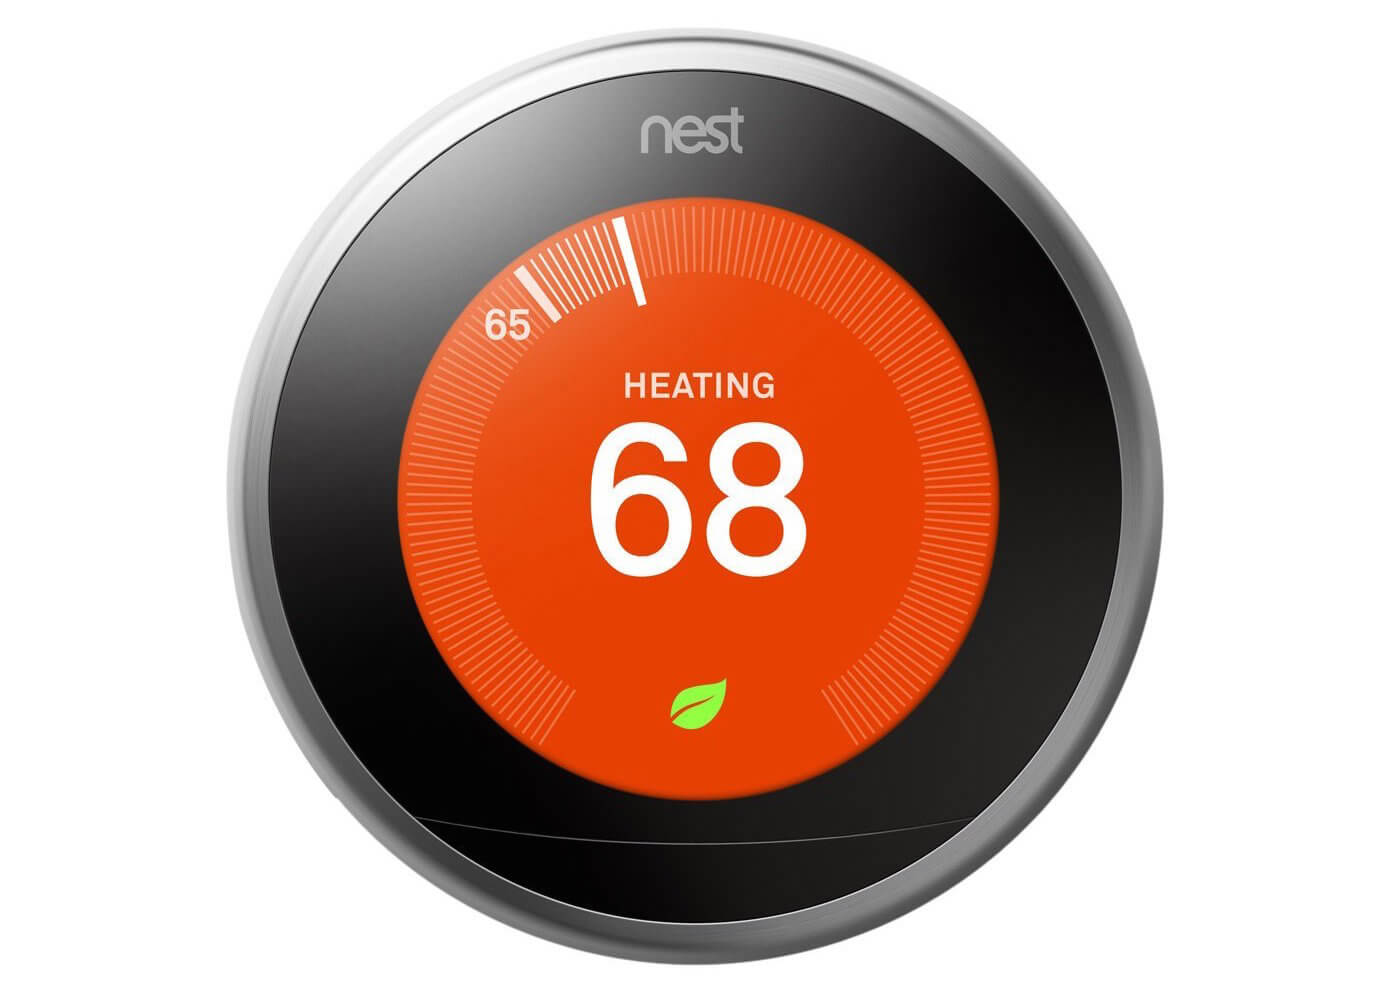 The Nest Learning Thermostat adapts to your lifestyle and the seasons, programming itself after just a week of operation. For instance, it will learn when you turn the heat down at night, and when you wake up for breakfast. It'll take note of when you leave for work and start programming around your schedule. Even more, with a companion smartphone app you can keep track of temperature and energy use remotely, and even set the temperature from wherever you are. Additionally, the wall unit itself will light up only when you've entered the room, and can be programmed to look just how you prefer.